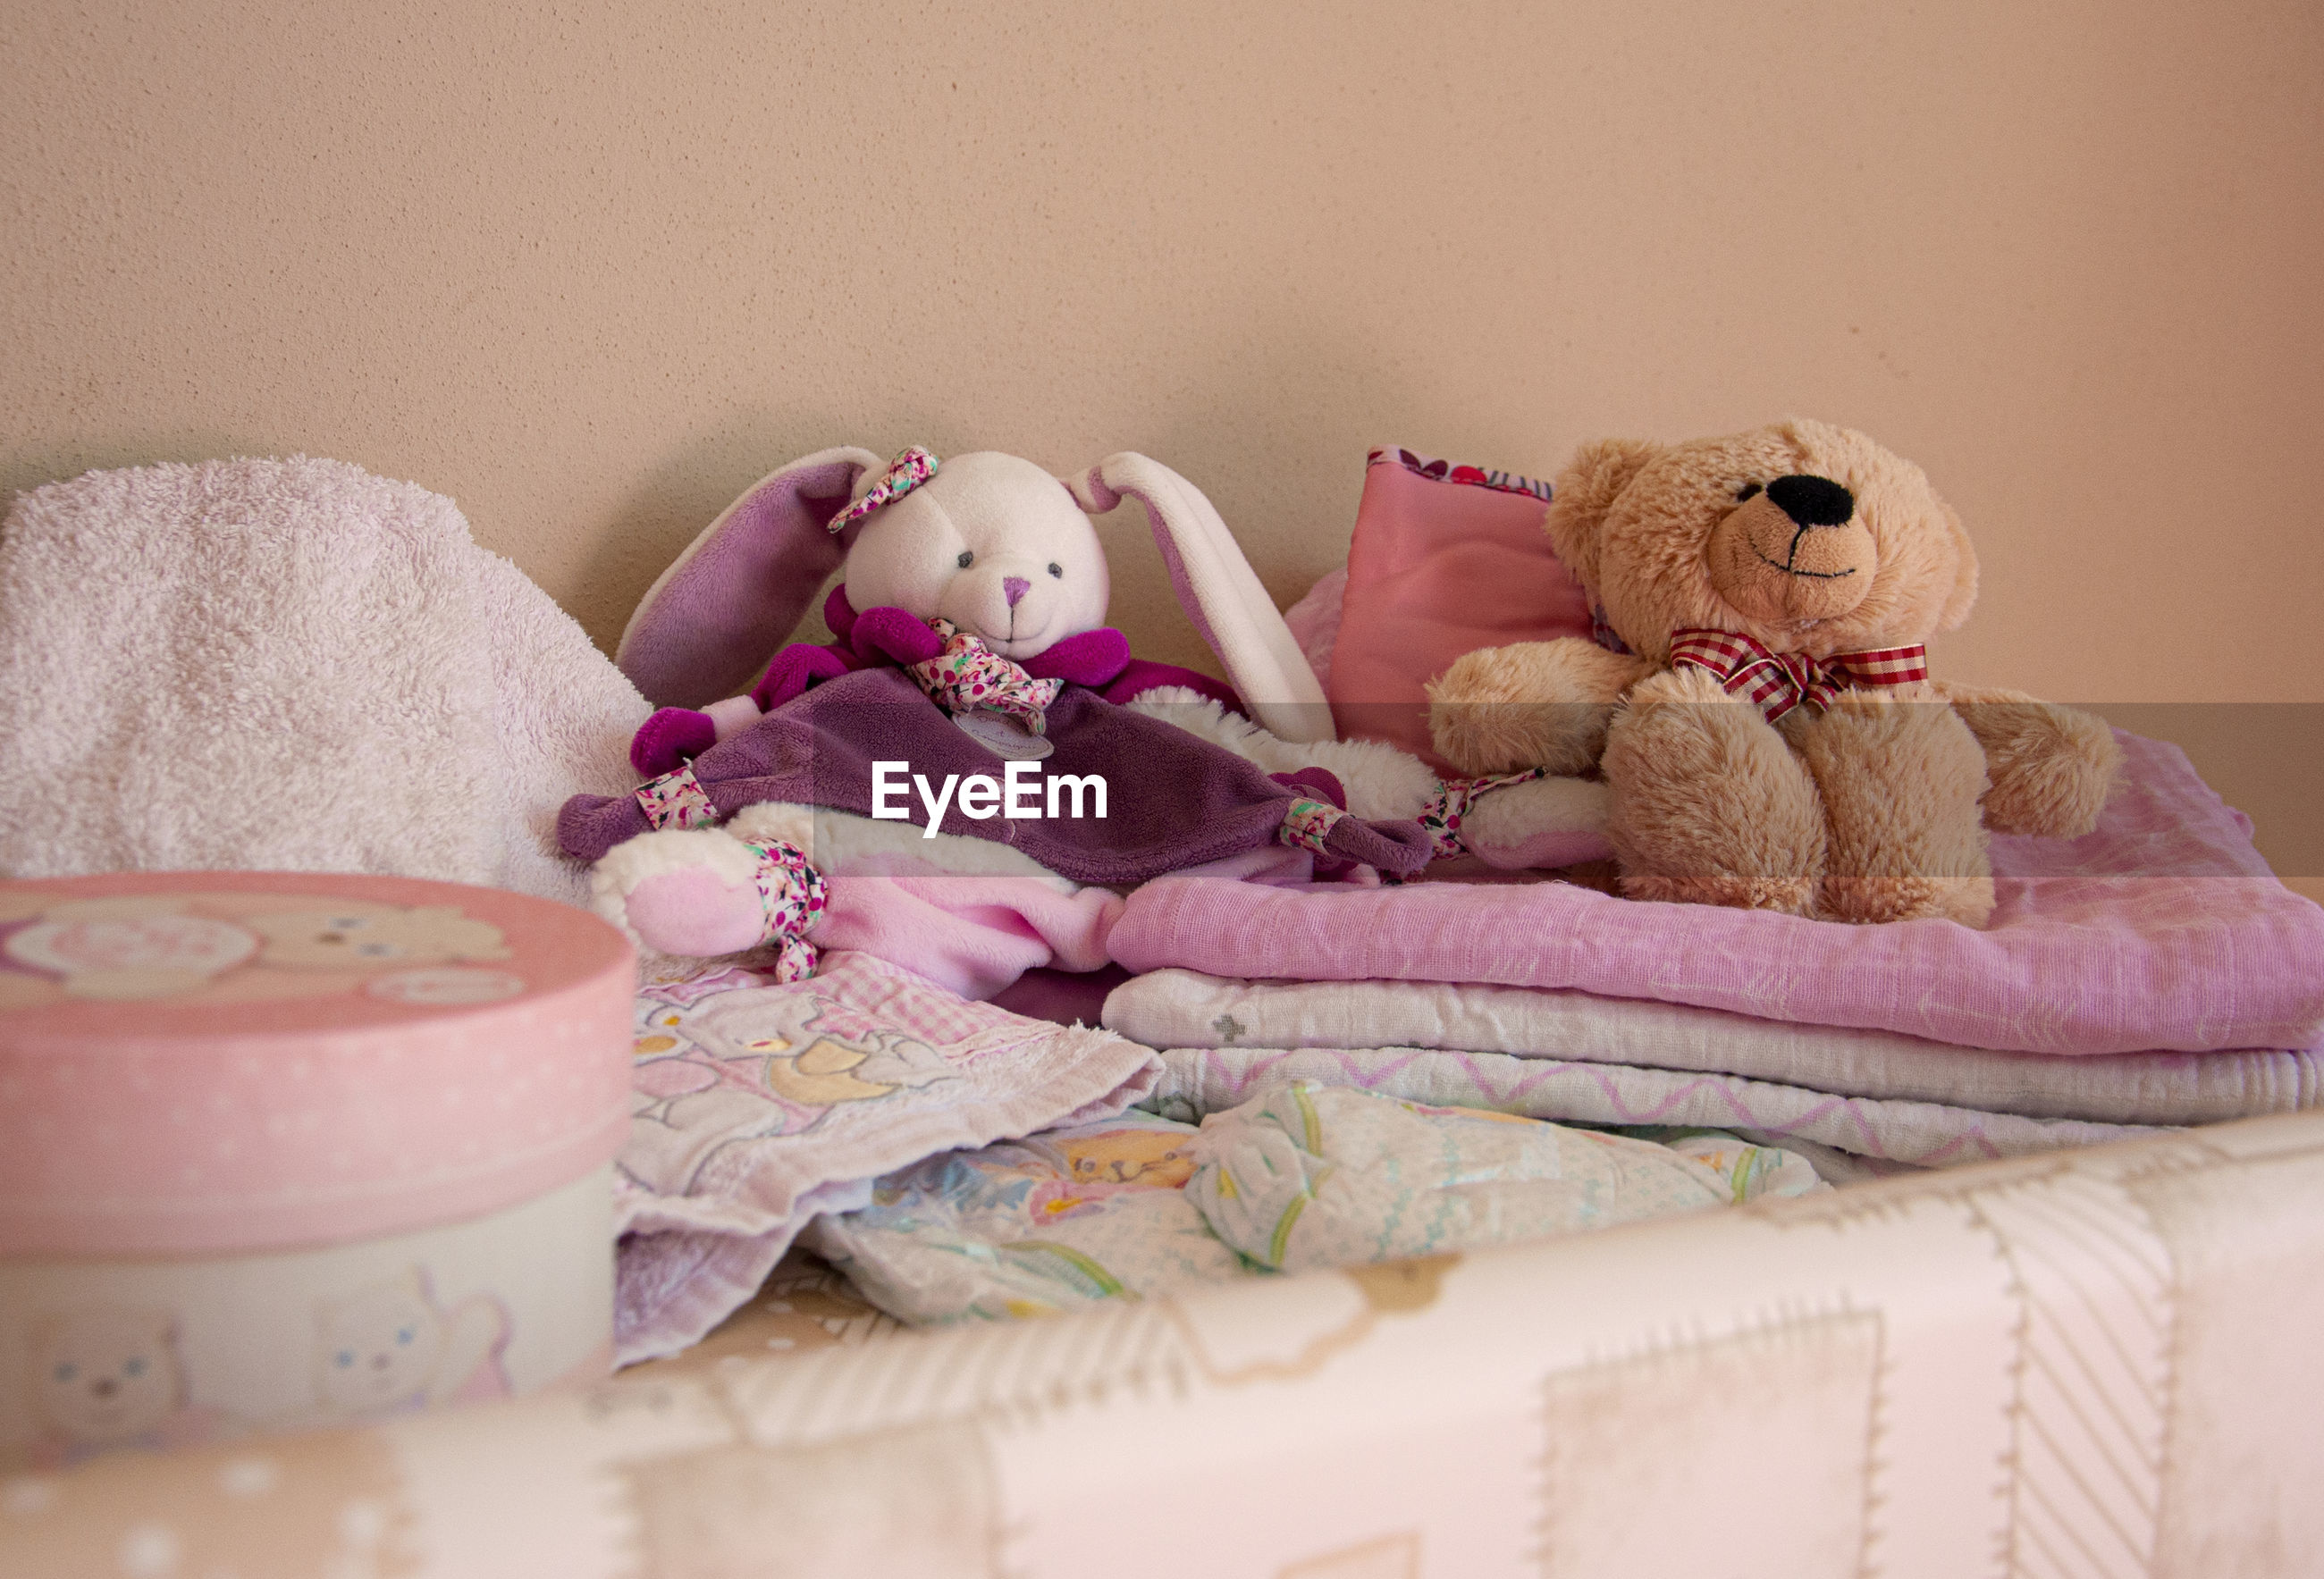 CLOSE-UP OF STUFFED TOYS ON BED